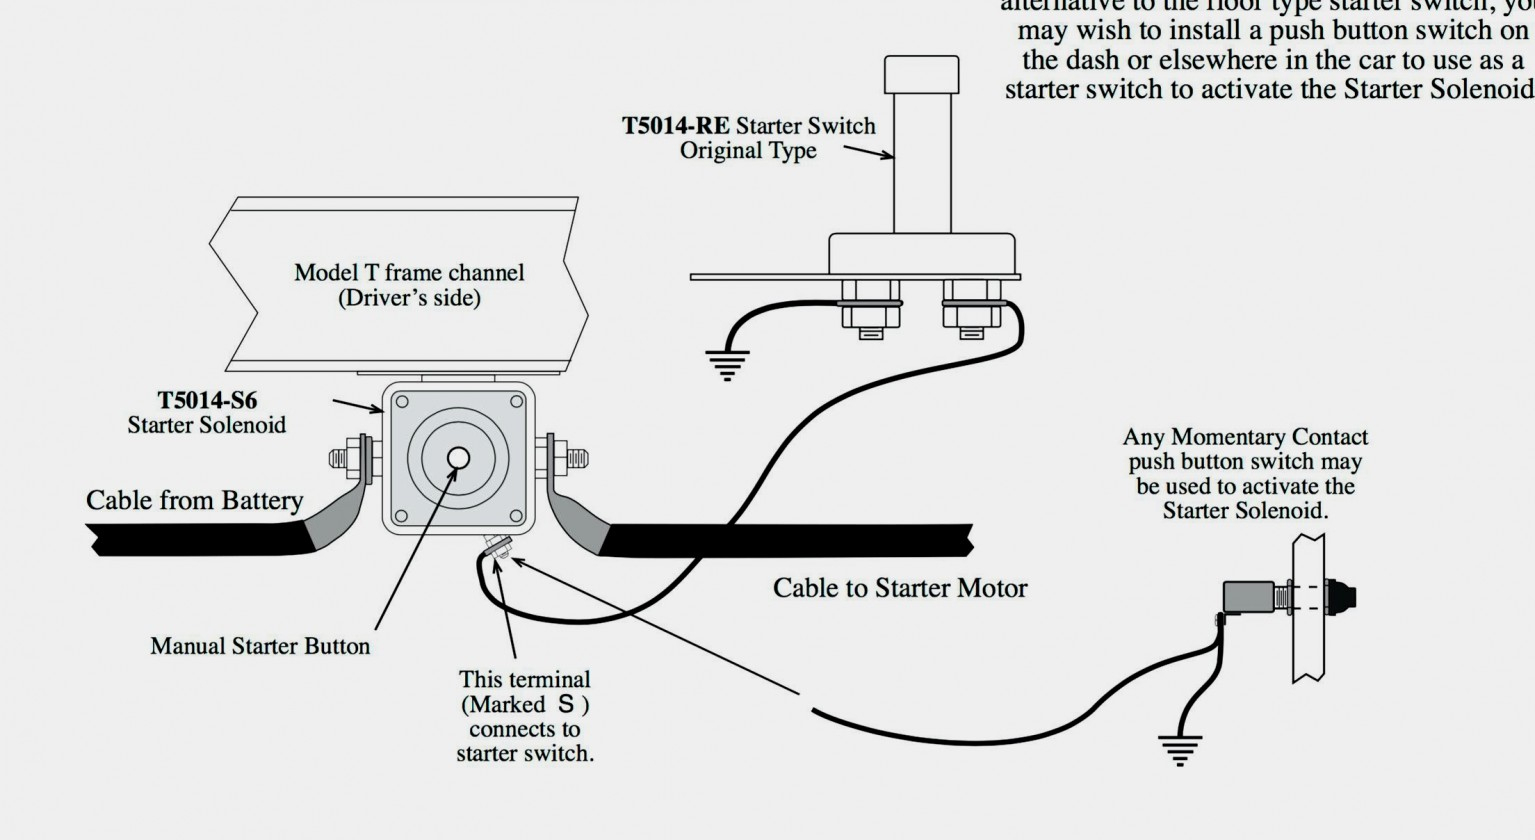 Gm Solenoid Wiring - Data Wiring Diagram Today - Gm Starter Solenoid Wiring Diagram